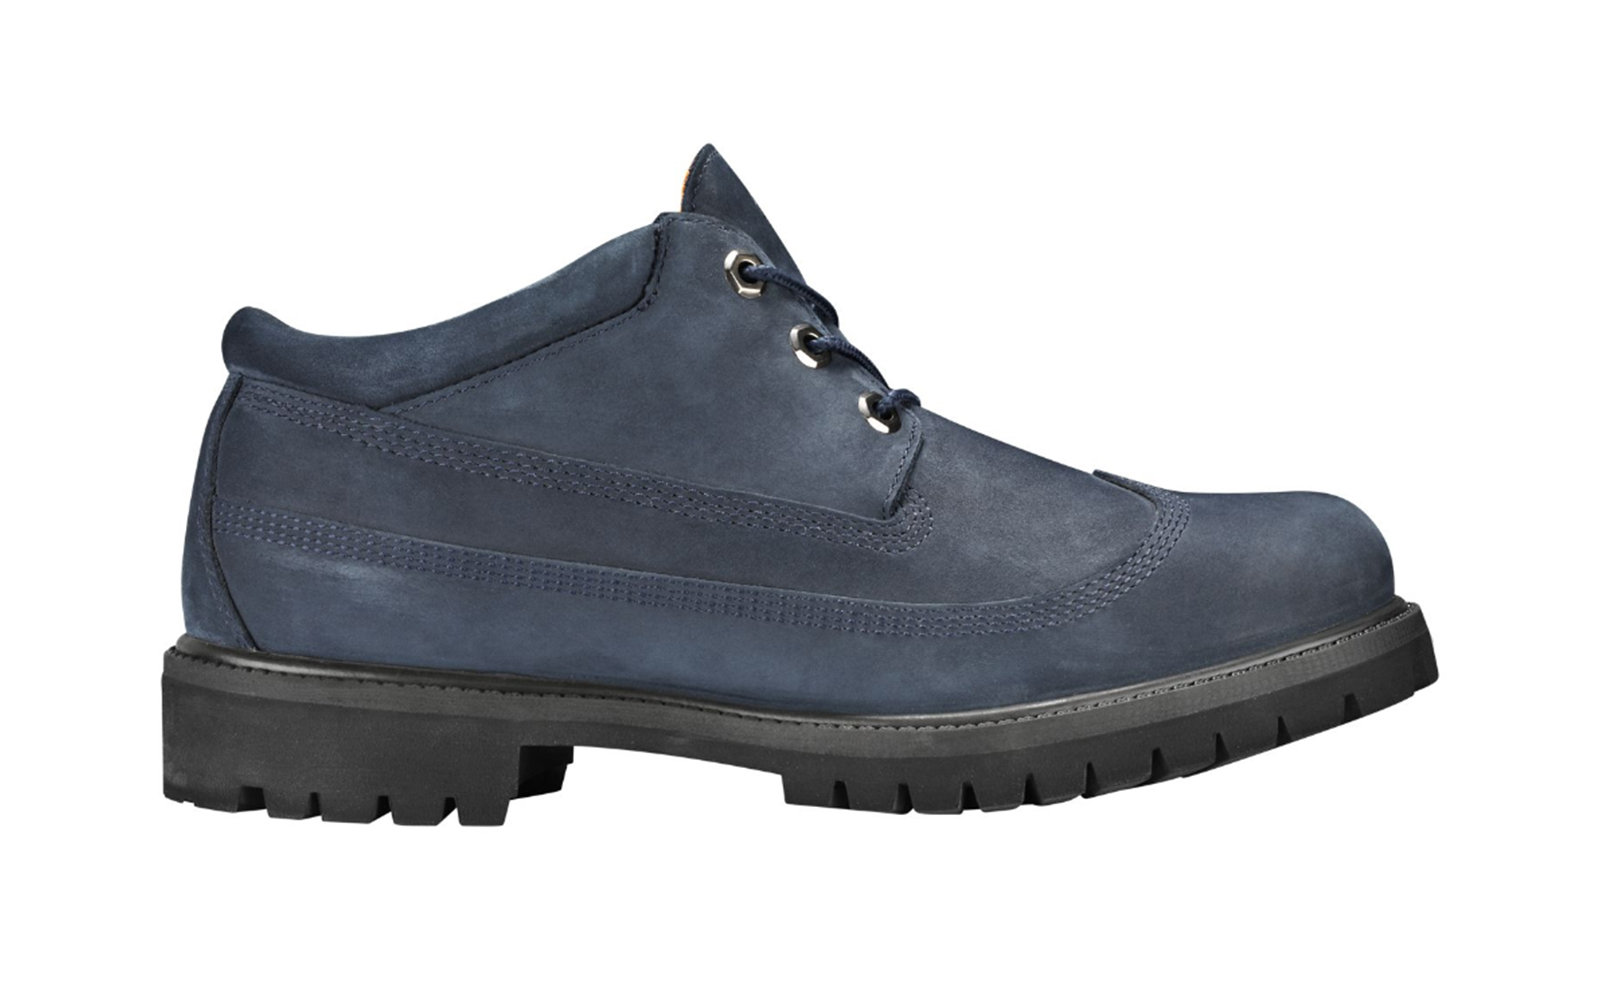 57e53fff6a6 Best Ankle Boots  Timberland x Engineered Garments Waterproof Oxford in Navy